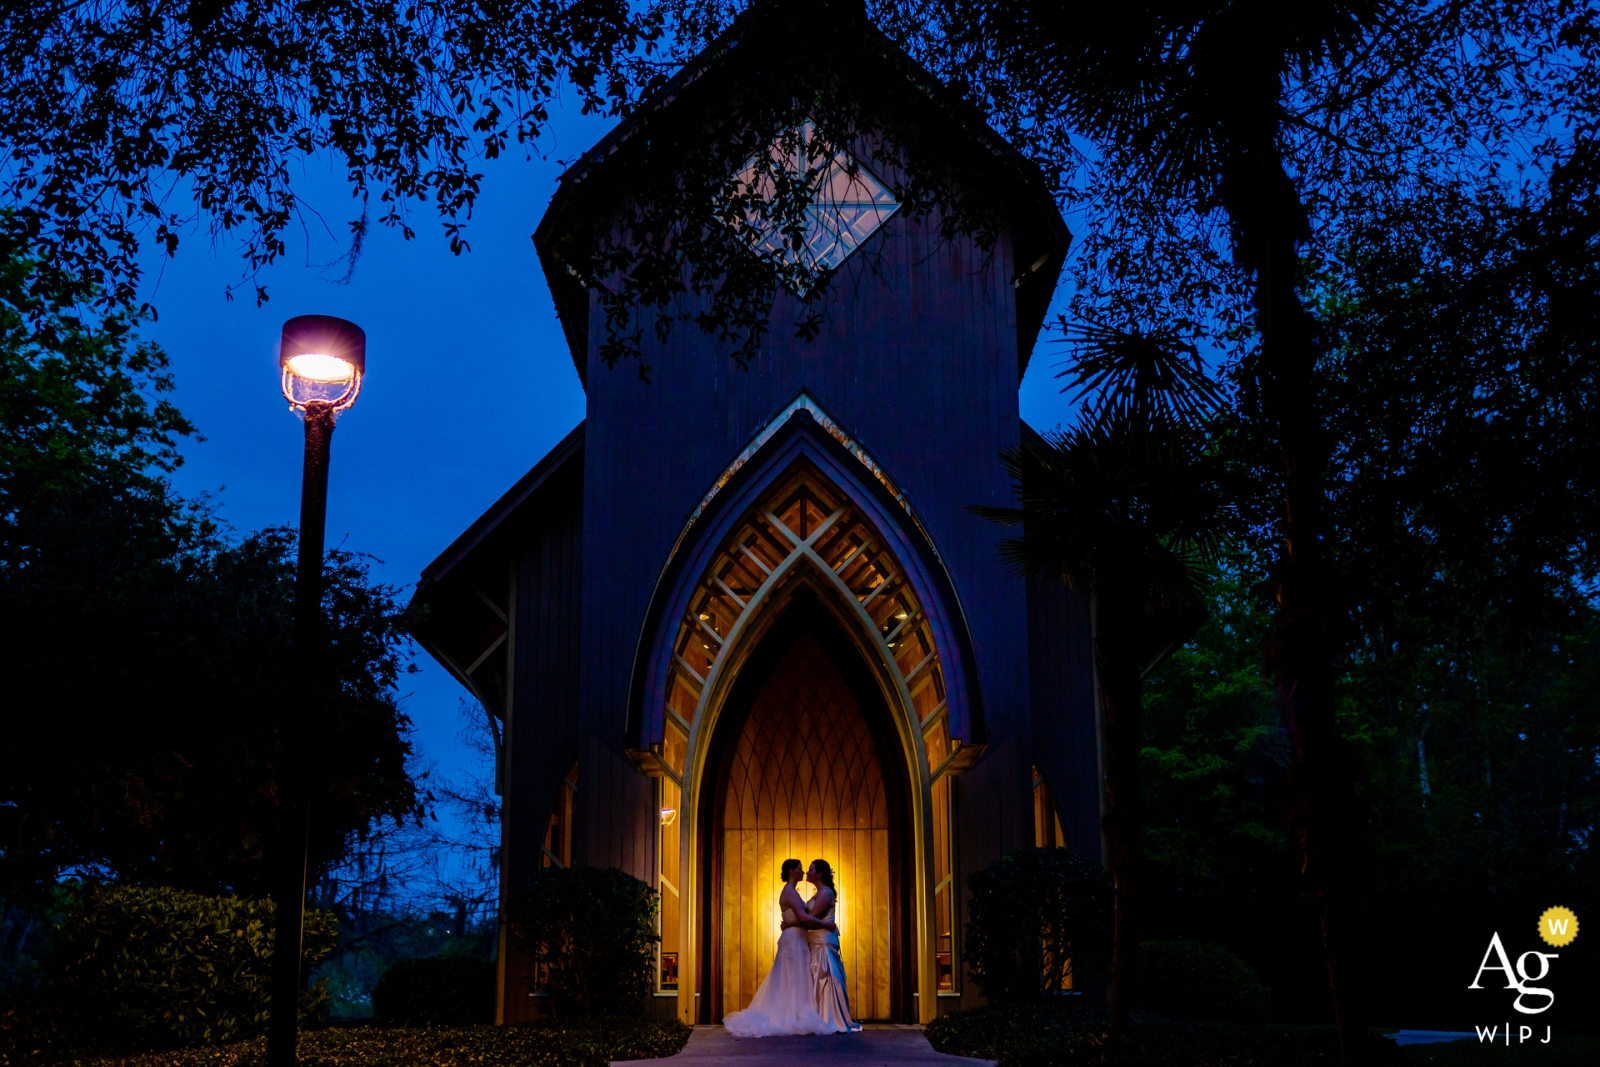 Baughman Center, University of Florida Gainesville Wedding Photography |  Brides pose for a portrait in front of their ceremony location at dusk, backlit against the building